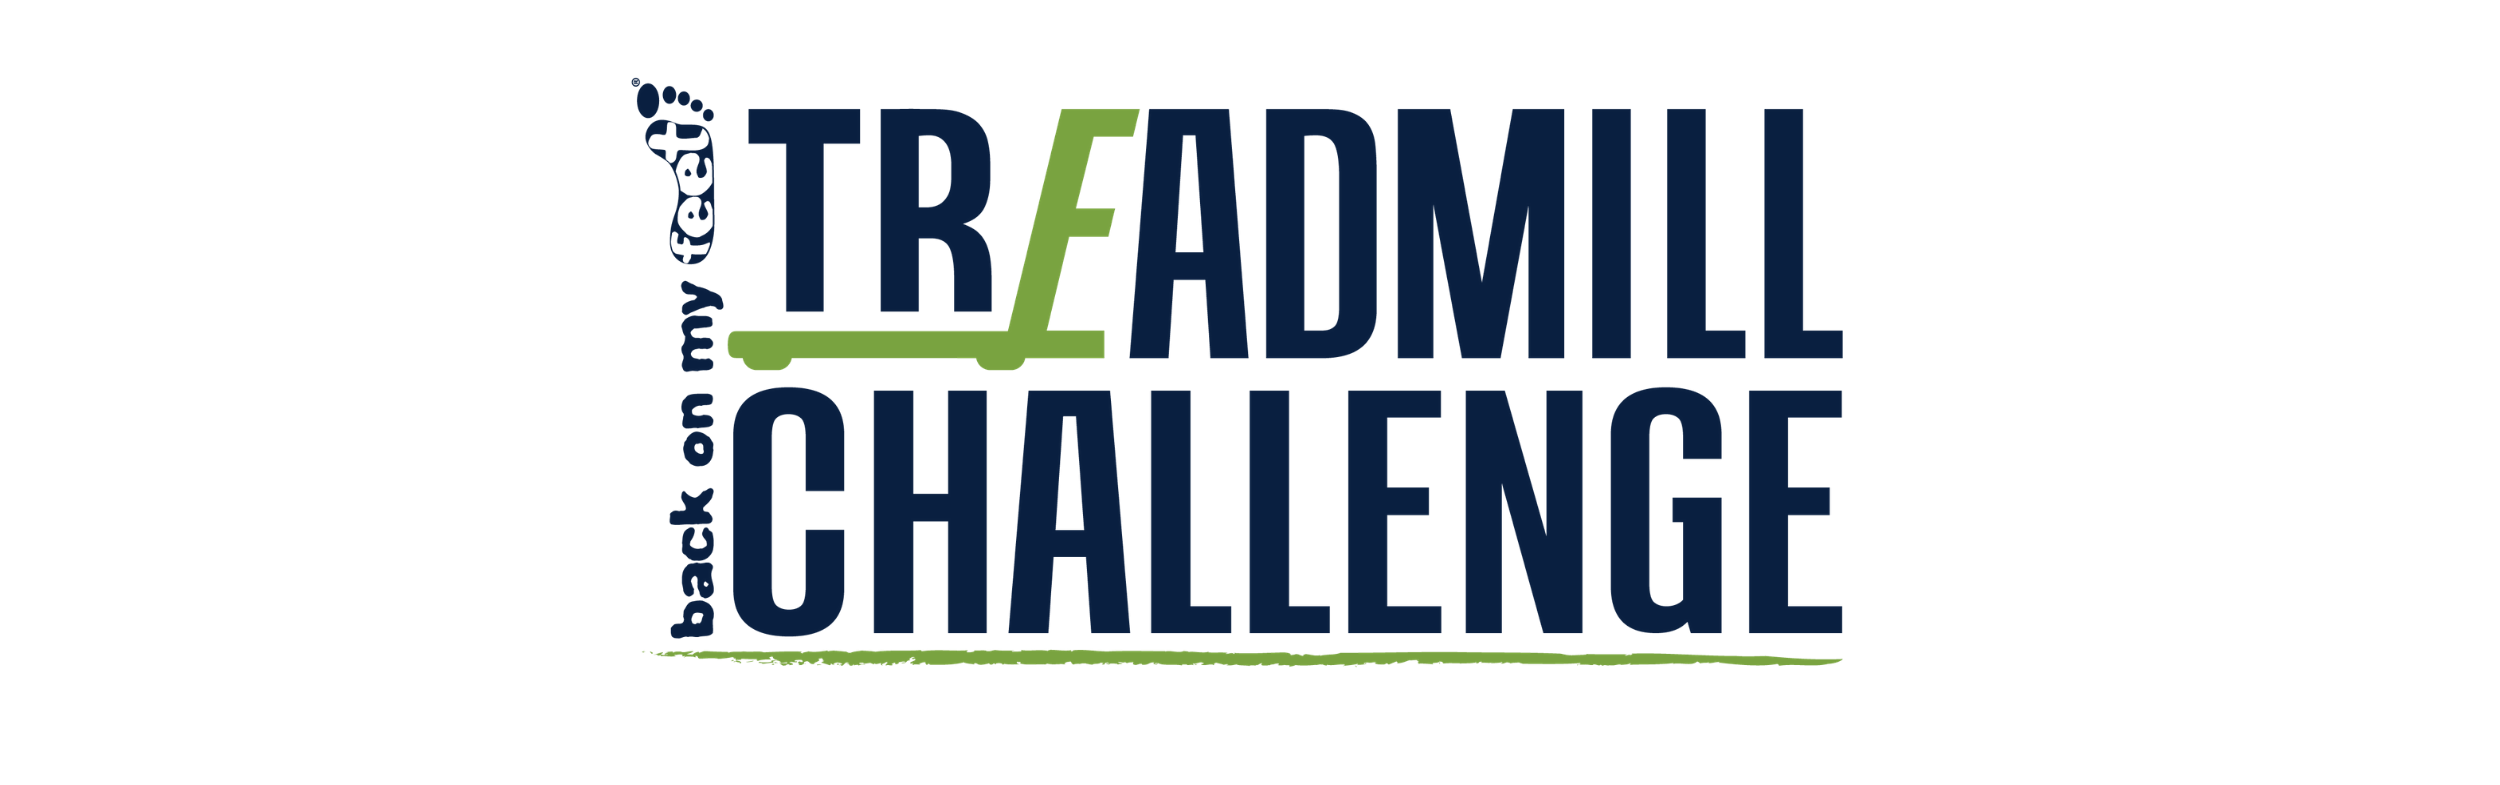 Treadmill_Challenge_RB_Logos_(2).png